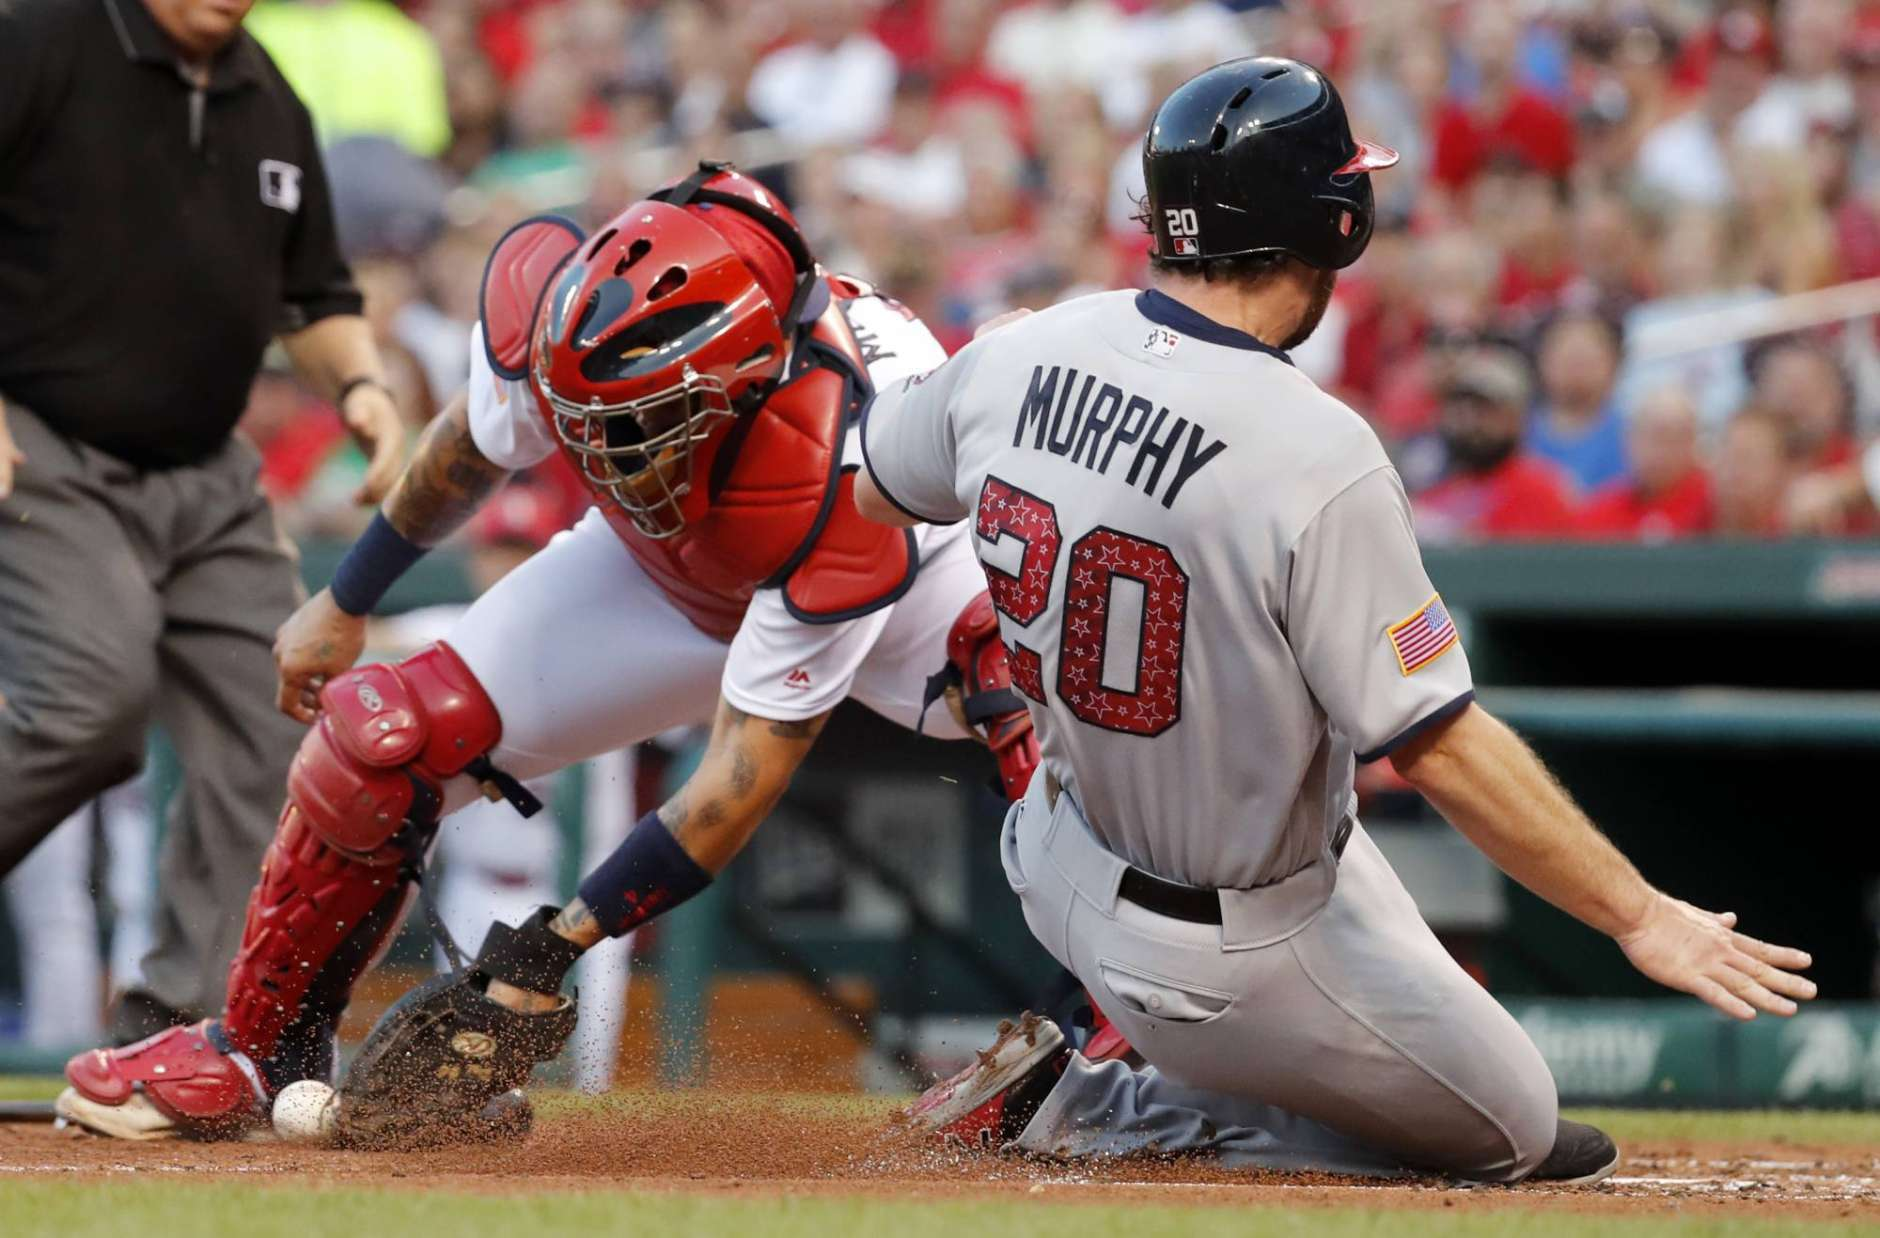 Washington Nationals' Daniel Murphy (20) scores as the throw gets away from St. Louis Cardinals catcher Yadier Molina during the third inning of a baseball game, Sunday, July 2, 2017, in St. Louis. (AP Photo/Jeff Roberson)